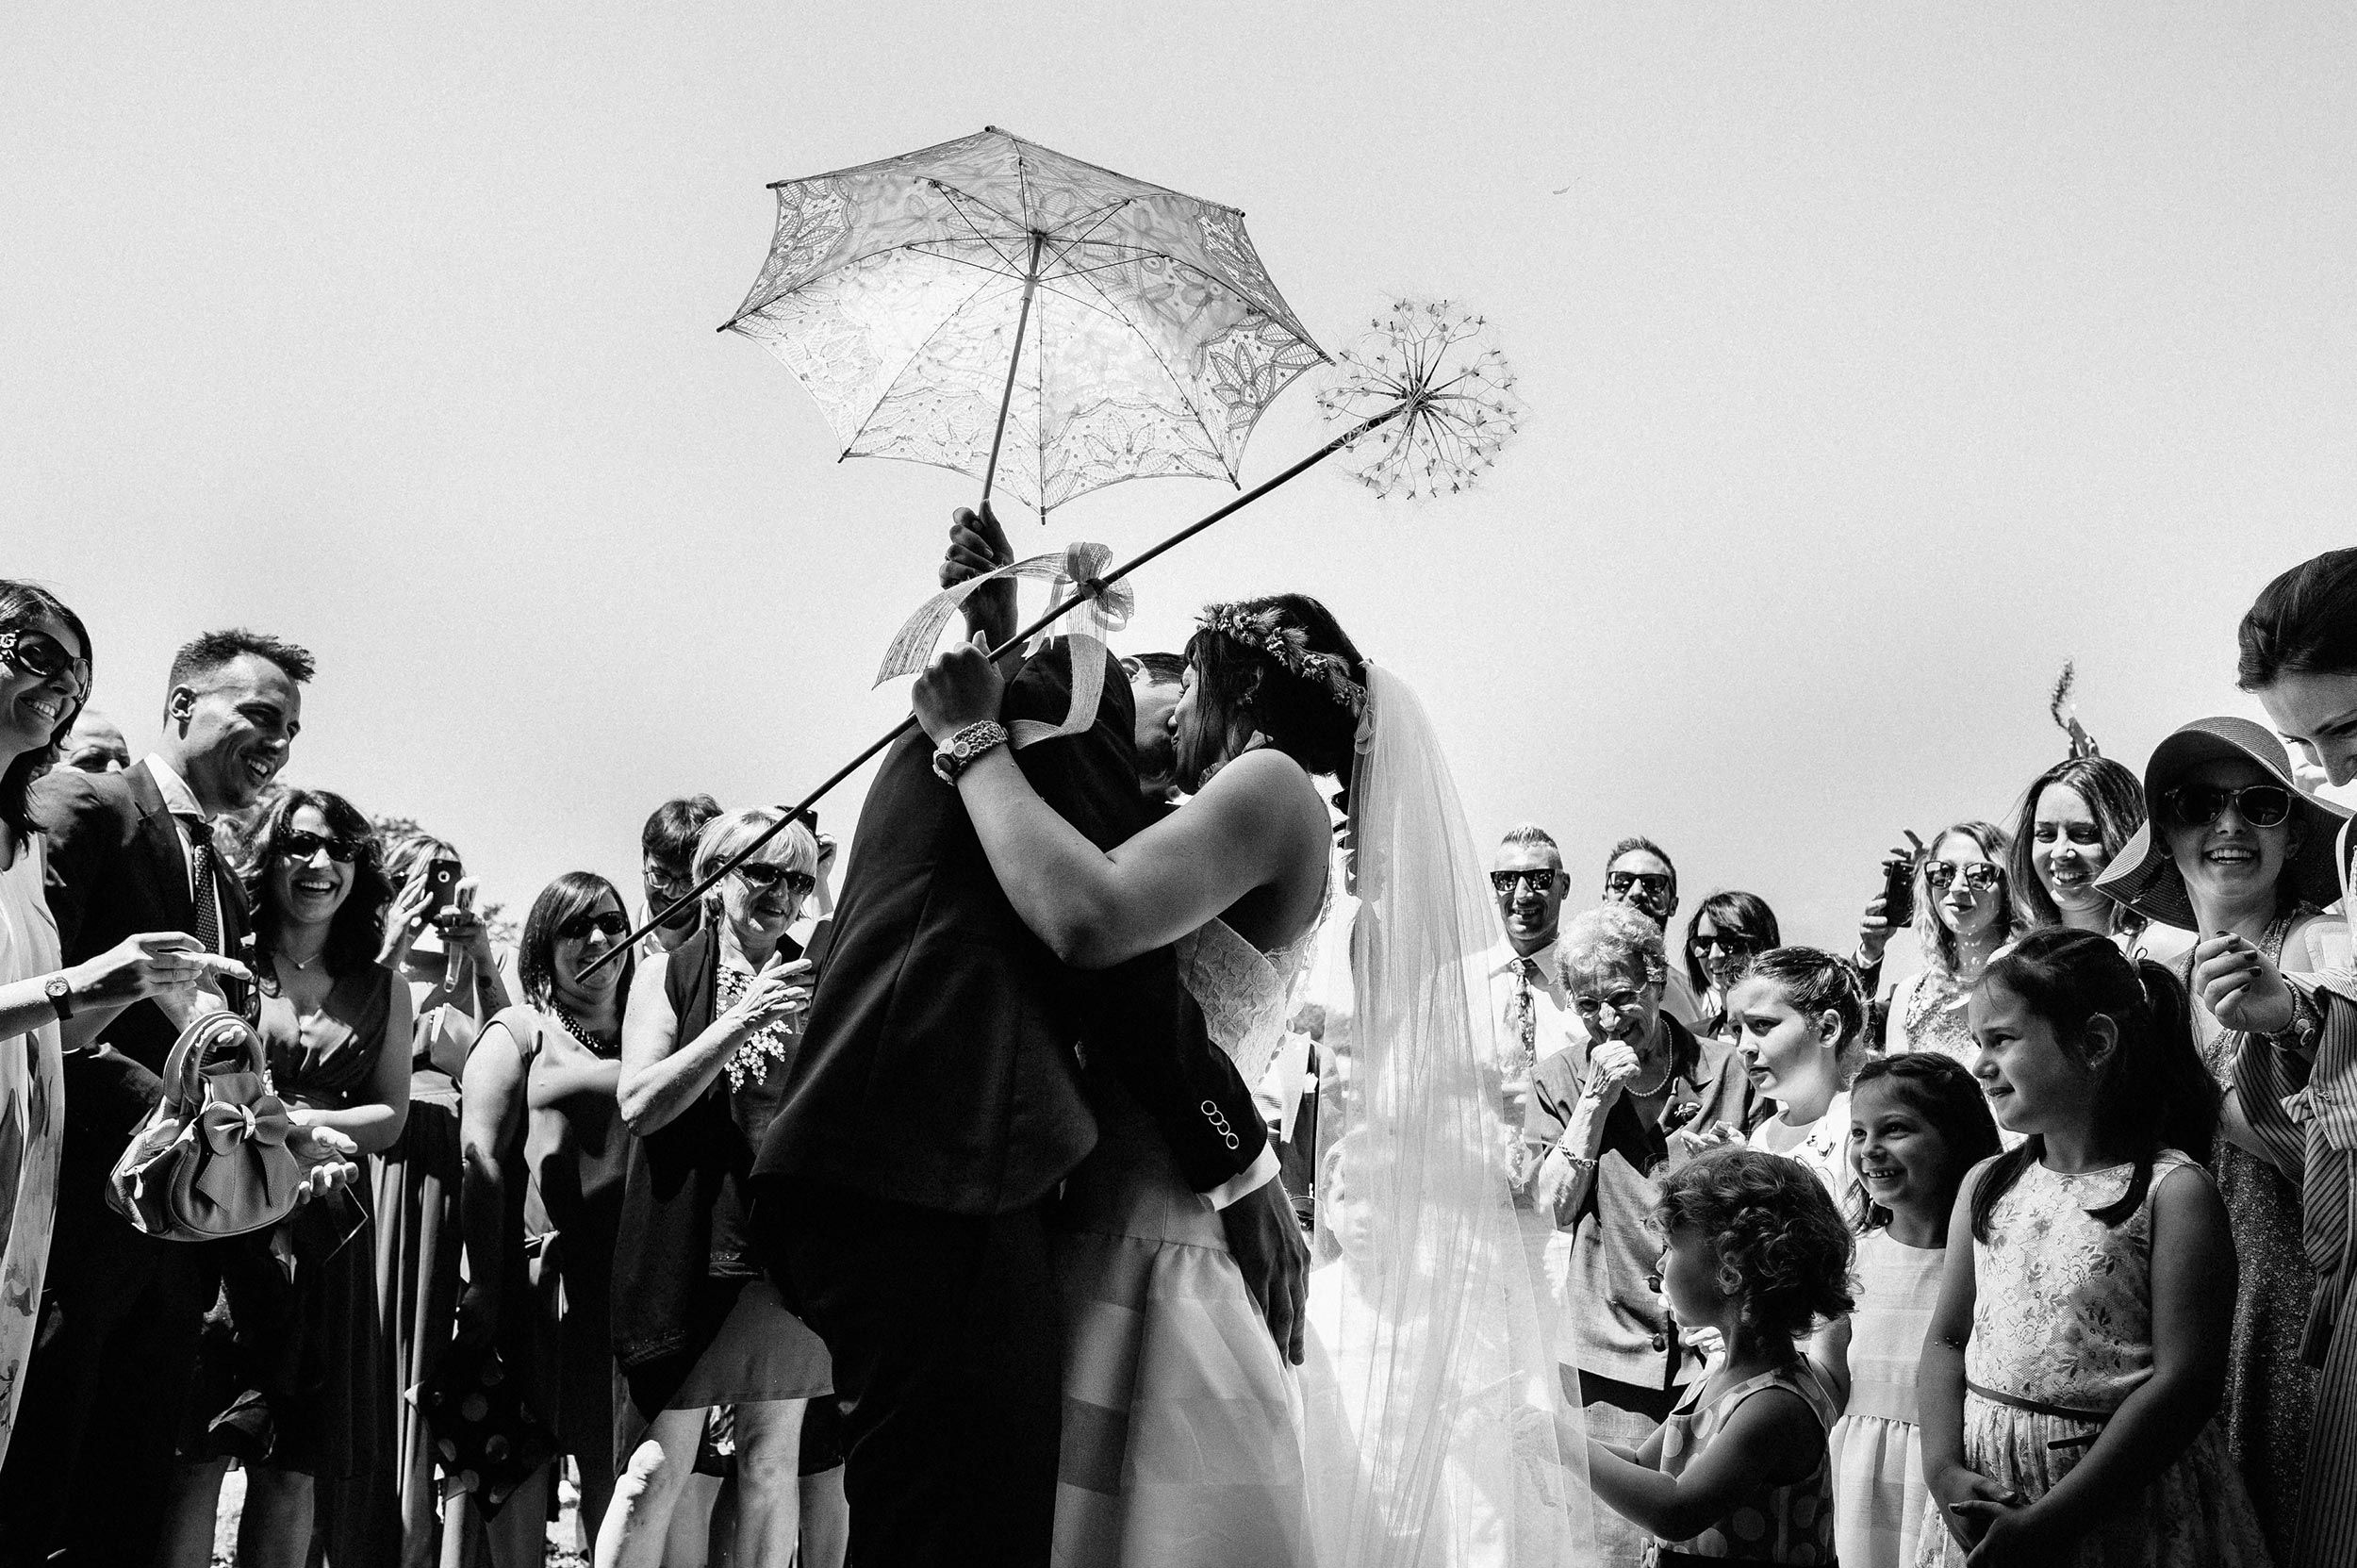 bride-and-groom-kissing-outside-the-church-black-and-white-wedding-photography.jpg